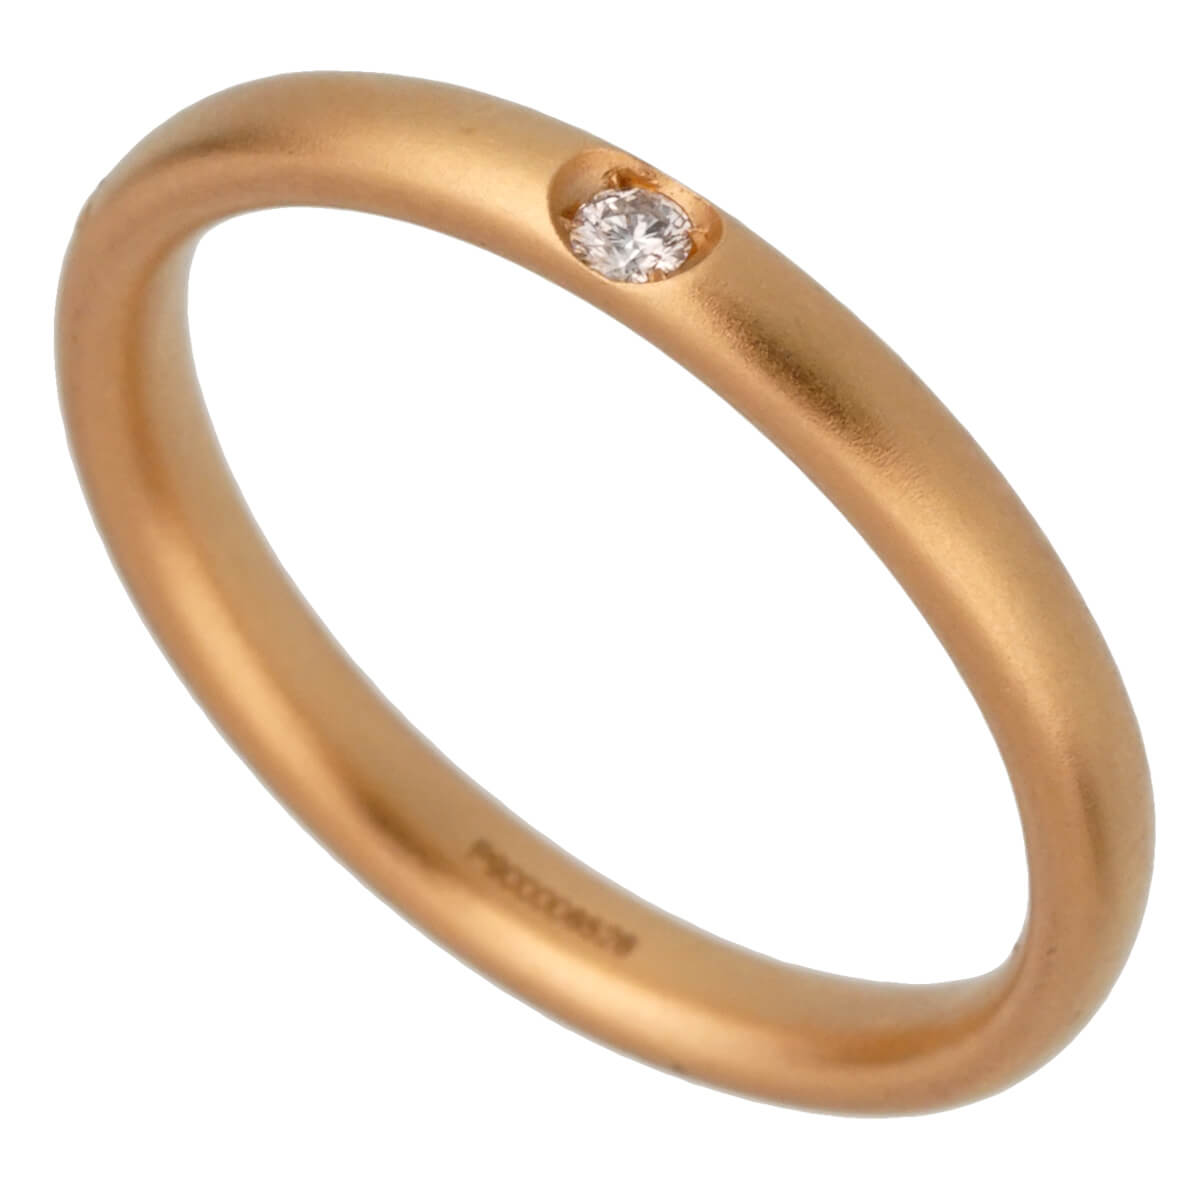 Pomellato Rose Gold Satin Finish Diamond Band Ring Sz 6 1/2